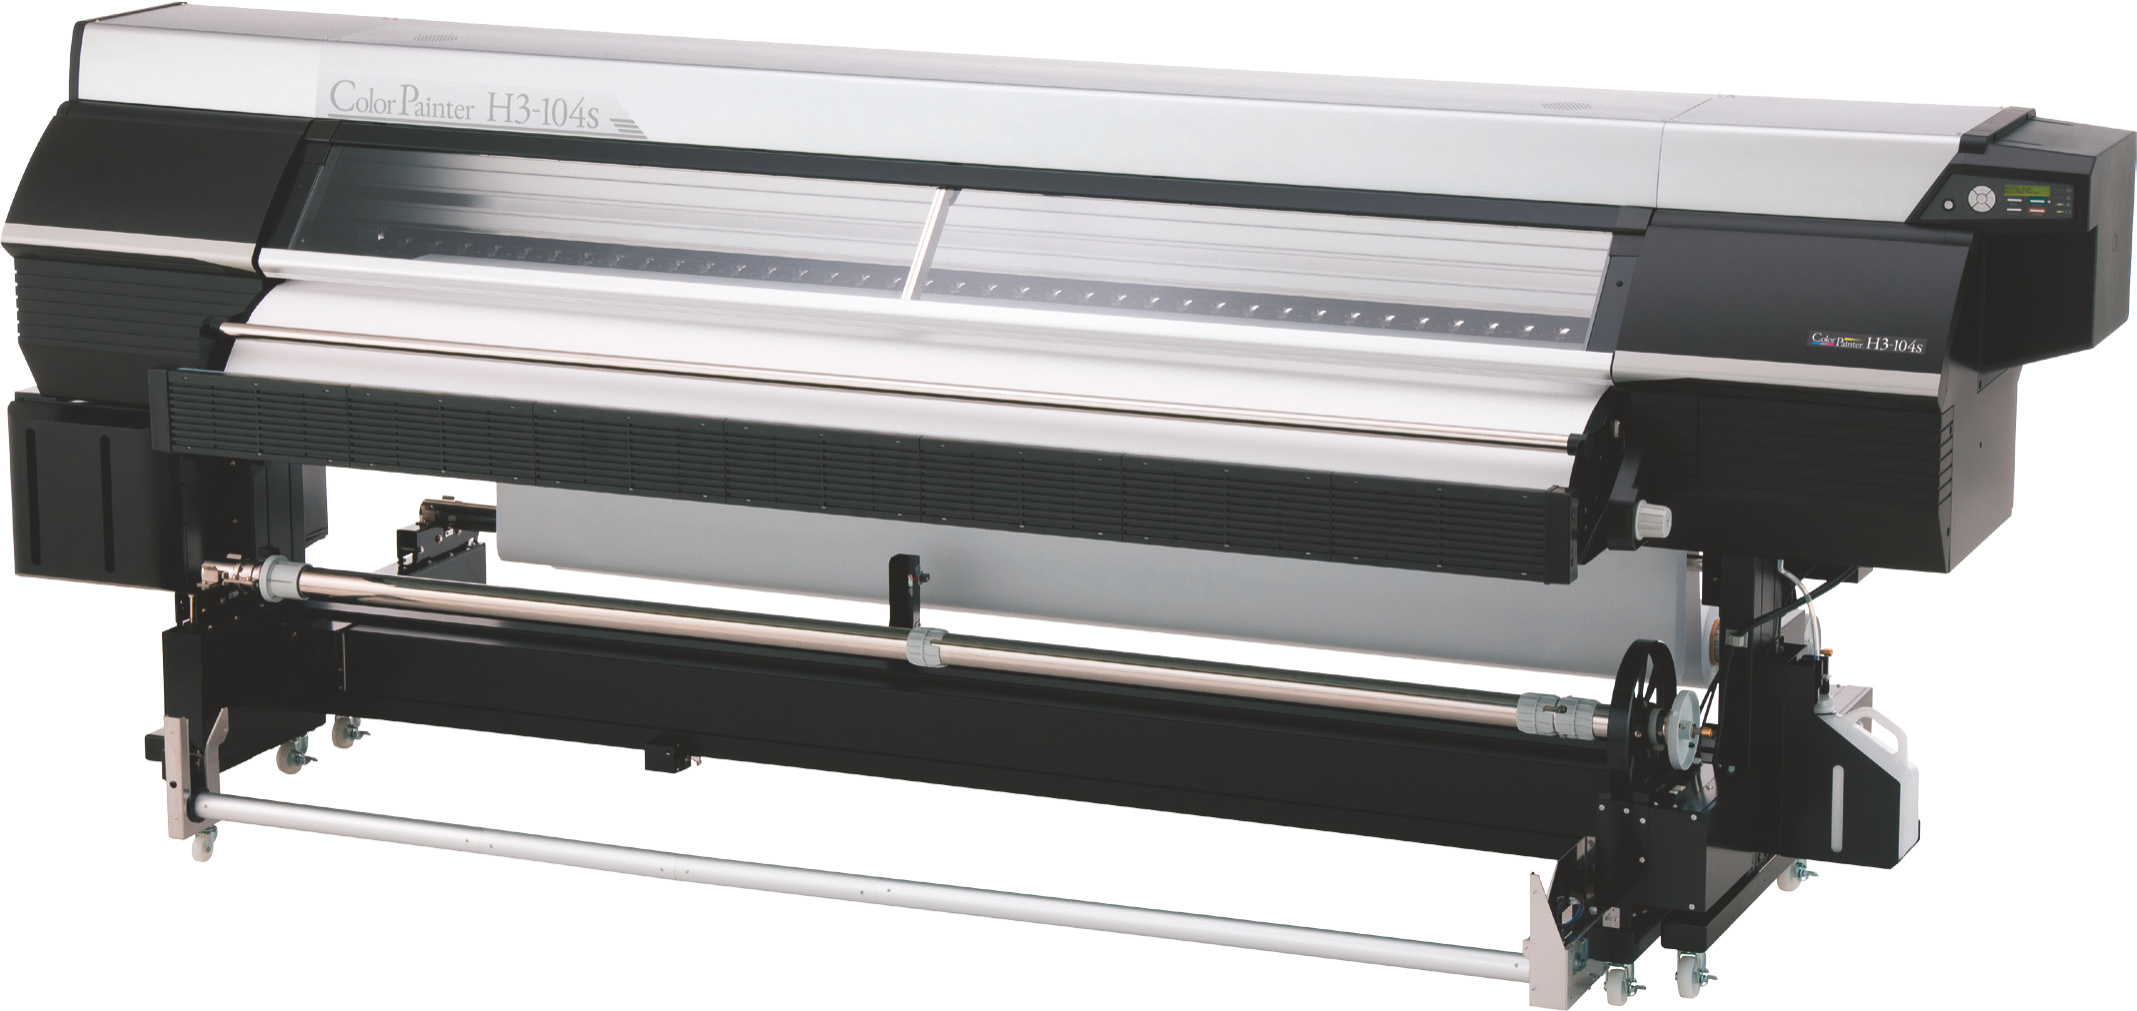 Ploter solentowy OKI ColorPainter H3-104s